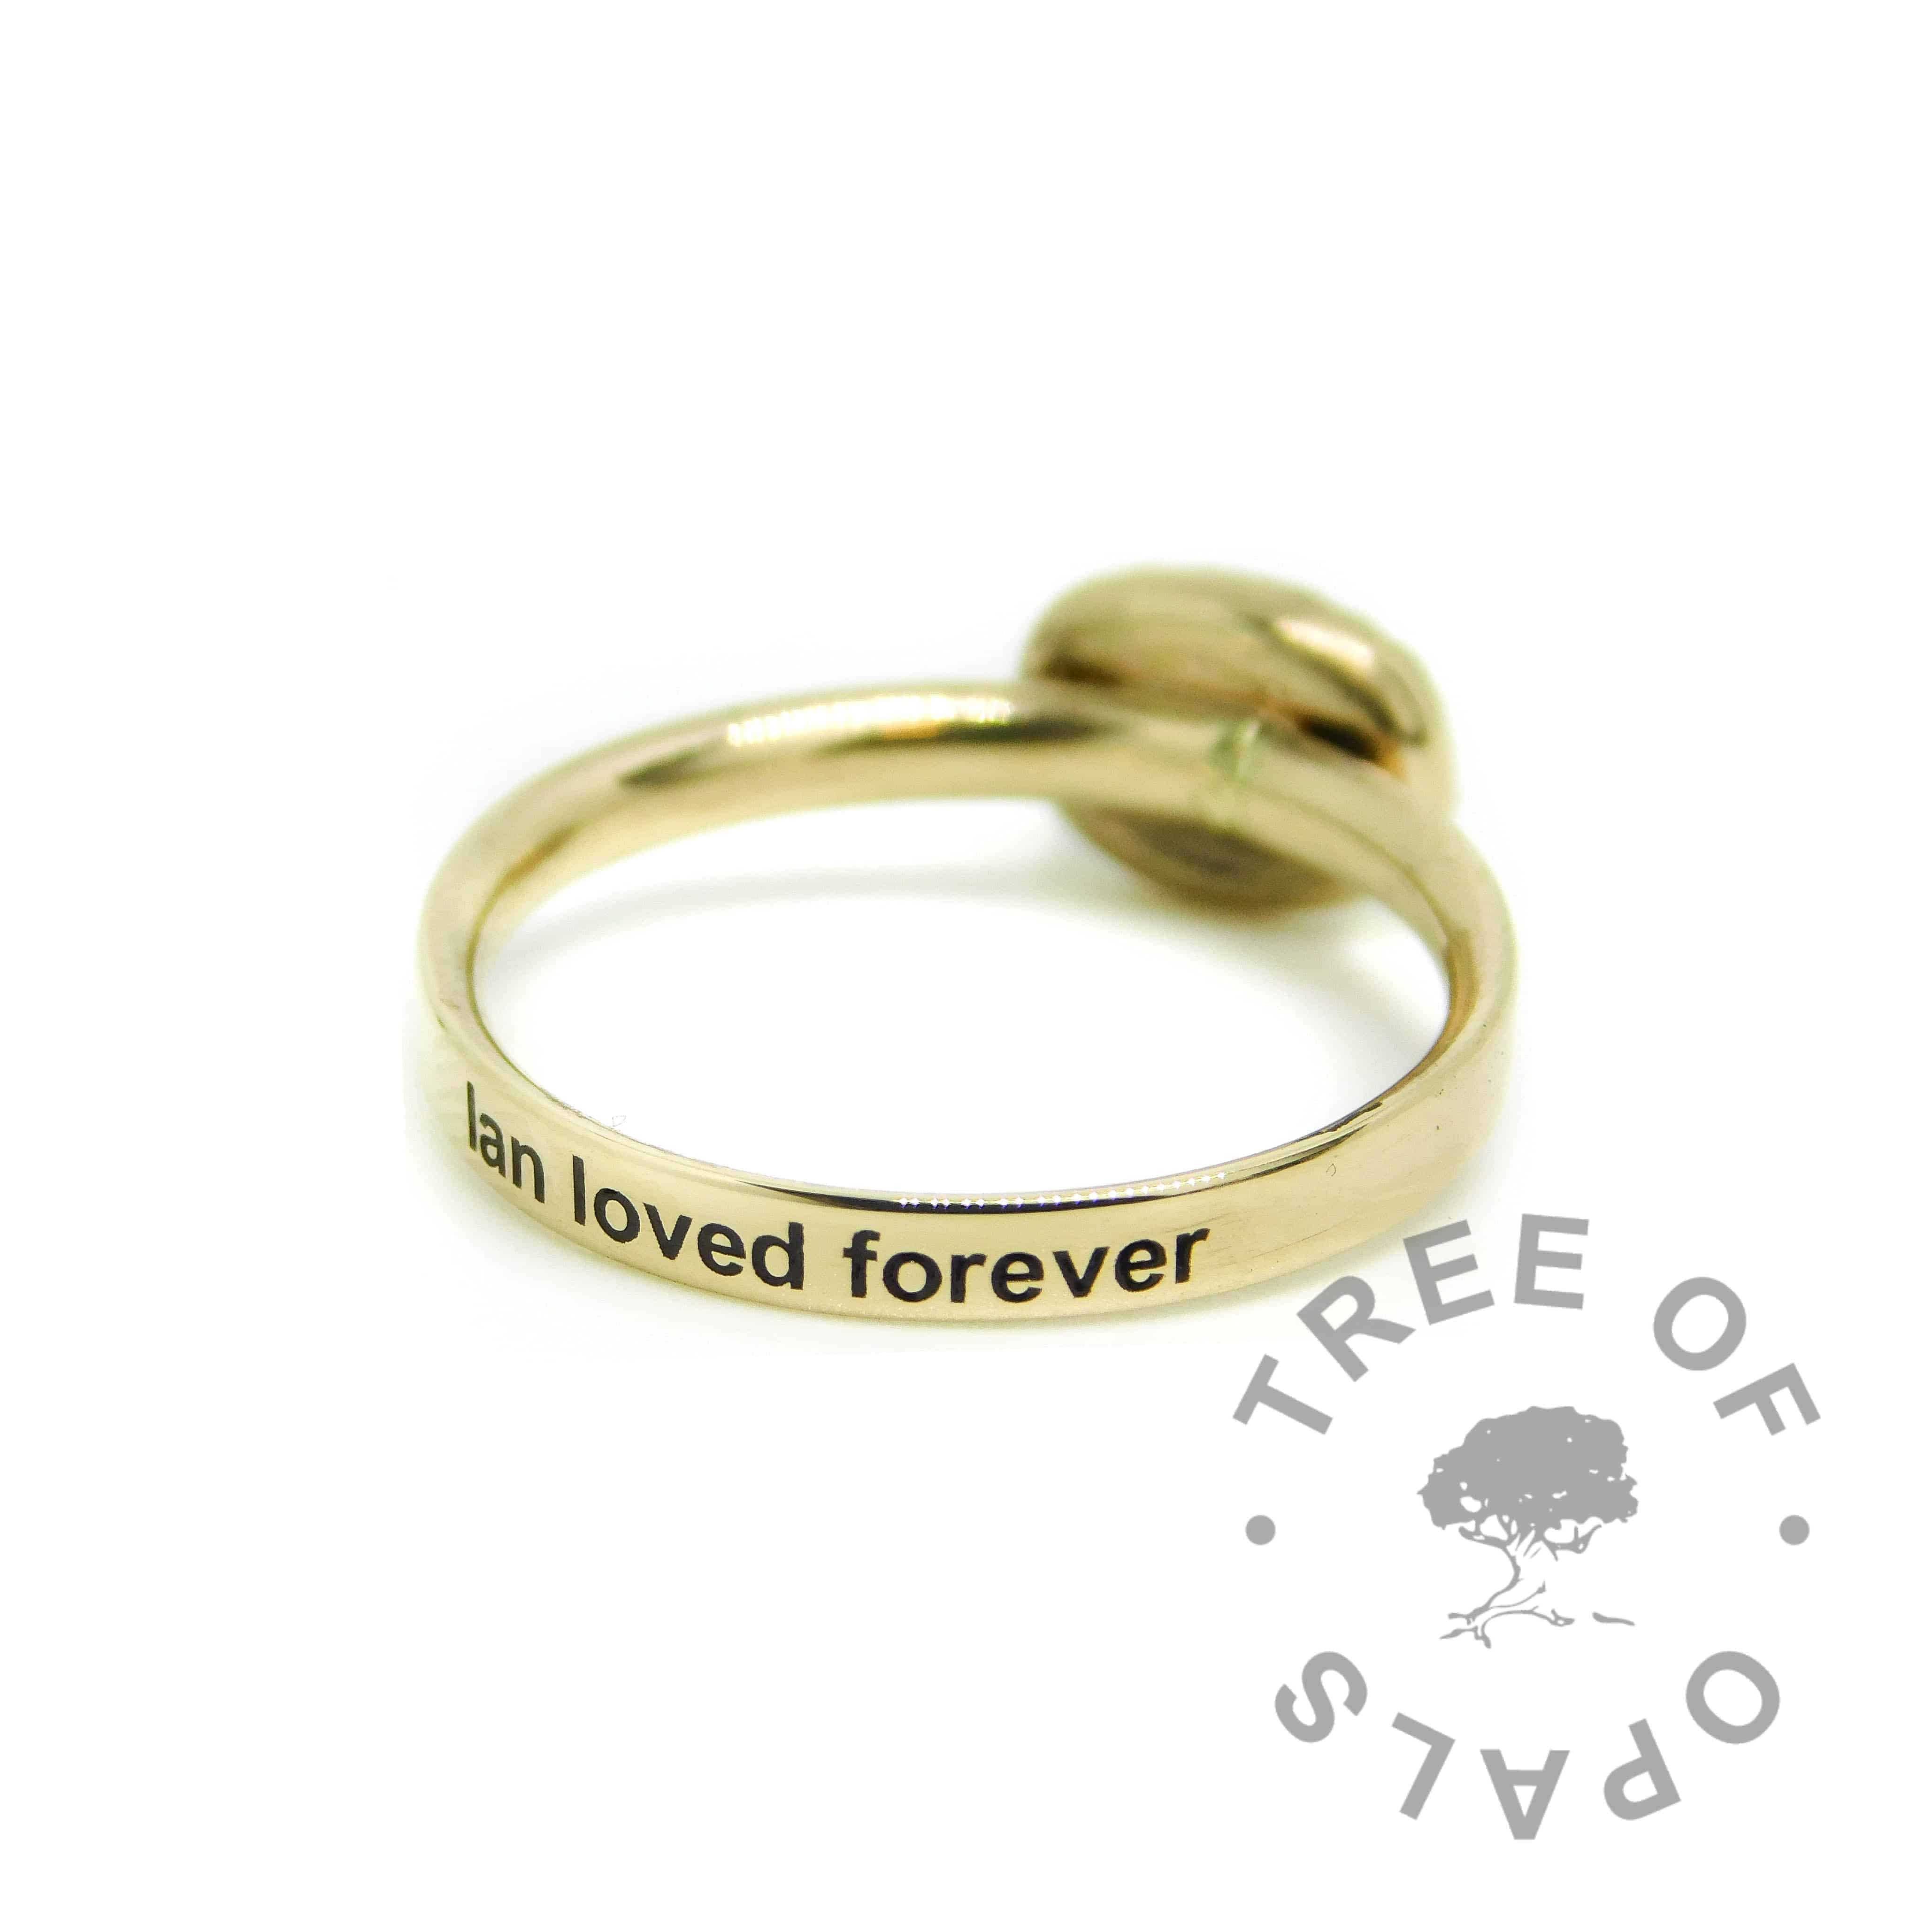 solid gold  memorial ring, shiny band 14ct gold hallmarked stacking ring. 8x6mm serrated cabochon with text engraving on the outside of the band in Arial font